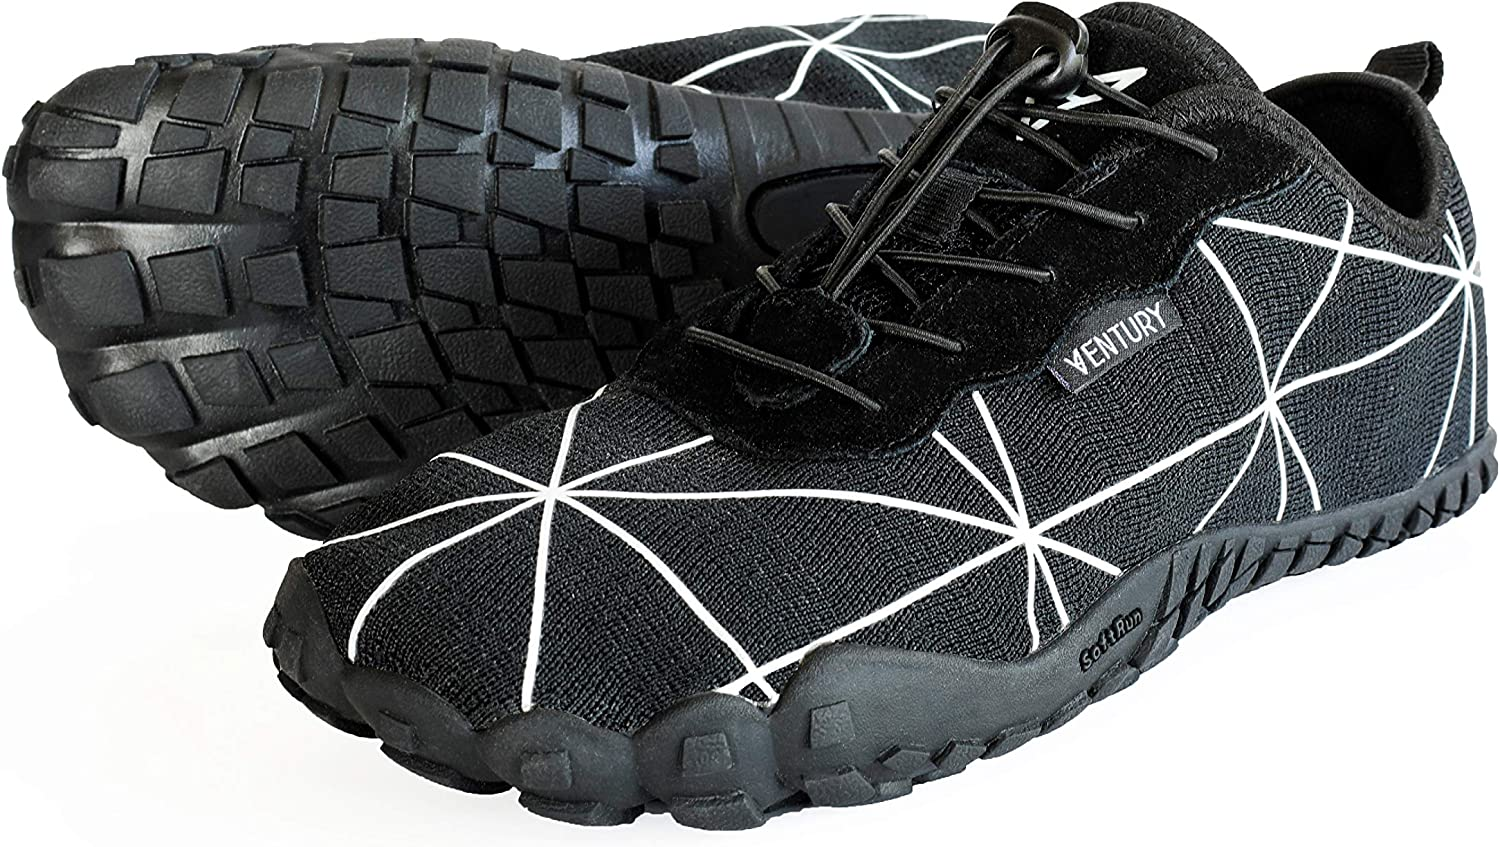 Ventury Zero Barefoot Trail Running Shoes Minimalist Runners With Wide Toe Box Zero Drop Sole And Odor Free Insole With Real Silver For Men And Women Amazon Co Uk Shoes Bags